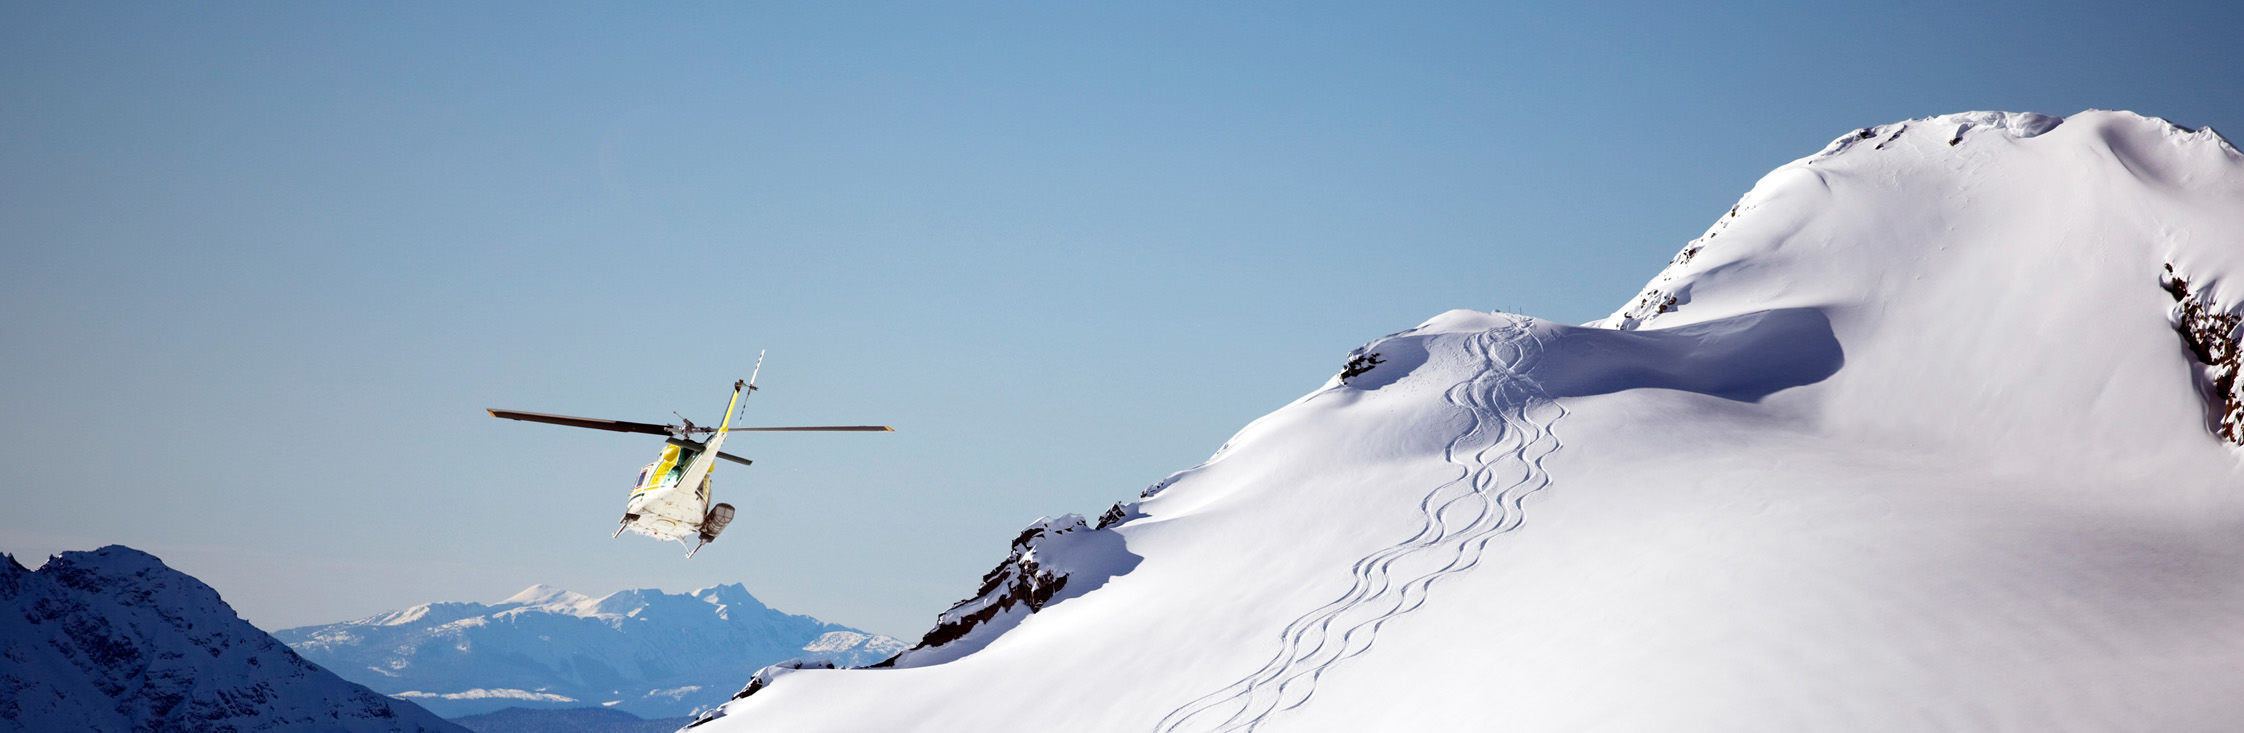 sliderbild_small_mwhs-mountains-helicopter-view